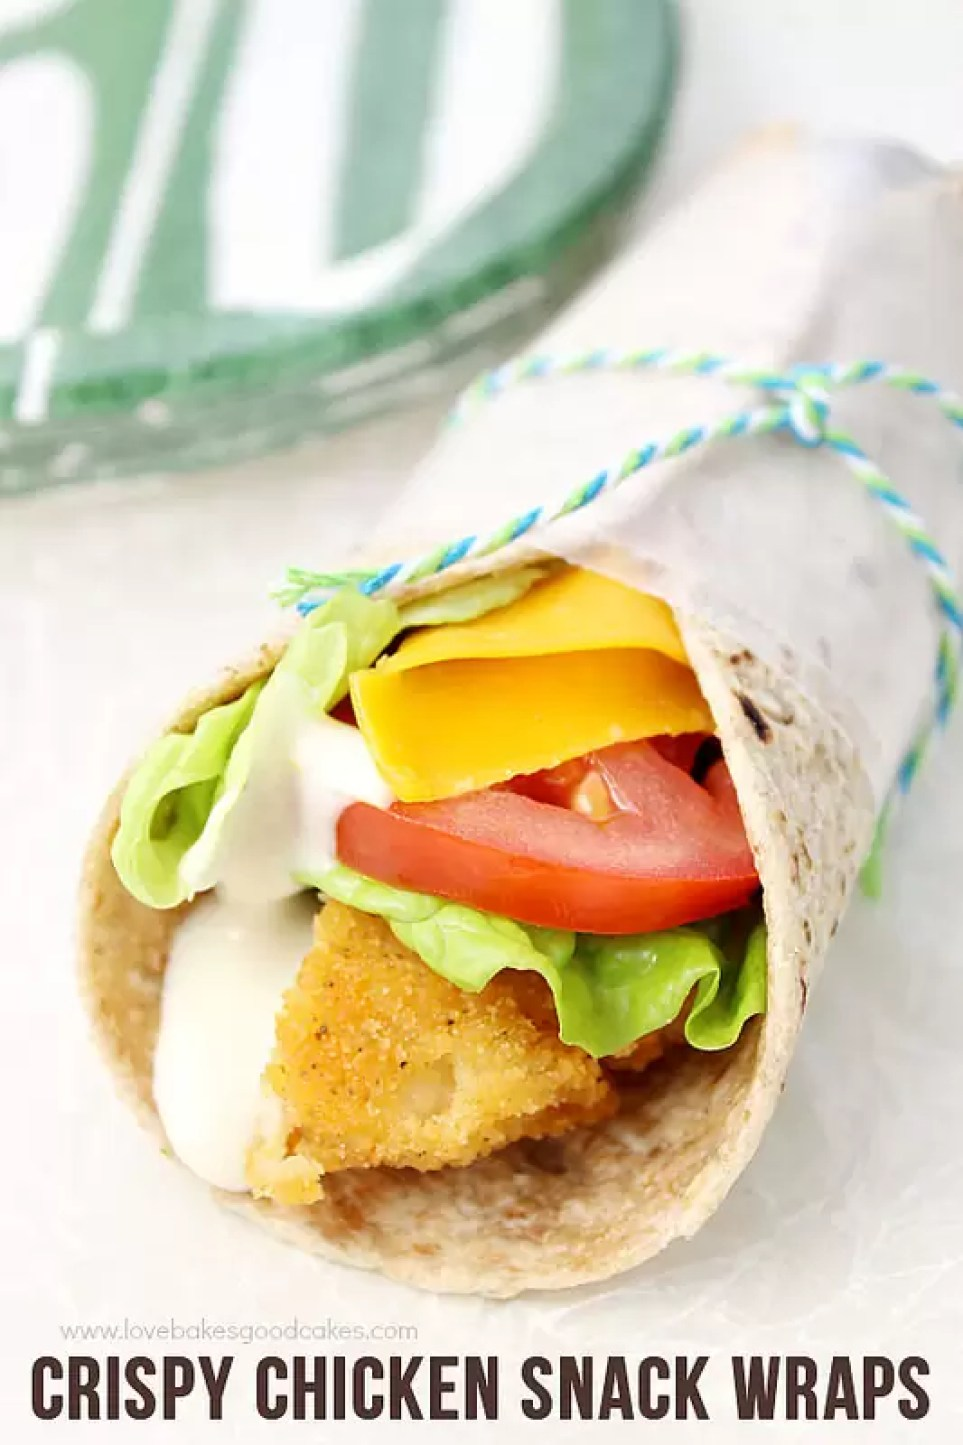 Crispy Chicken Snack Wraps by Love Bakes Good Cakes